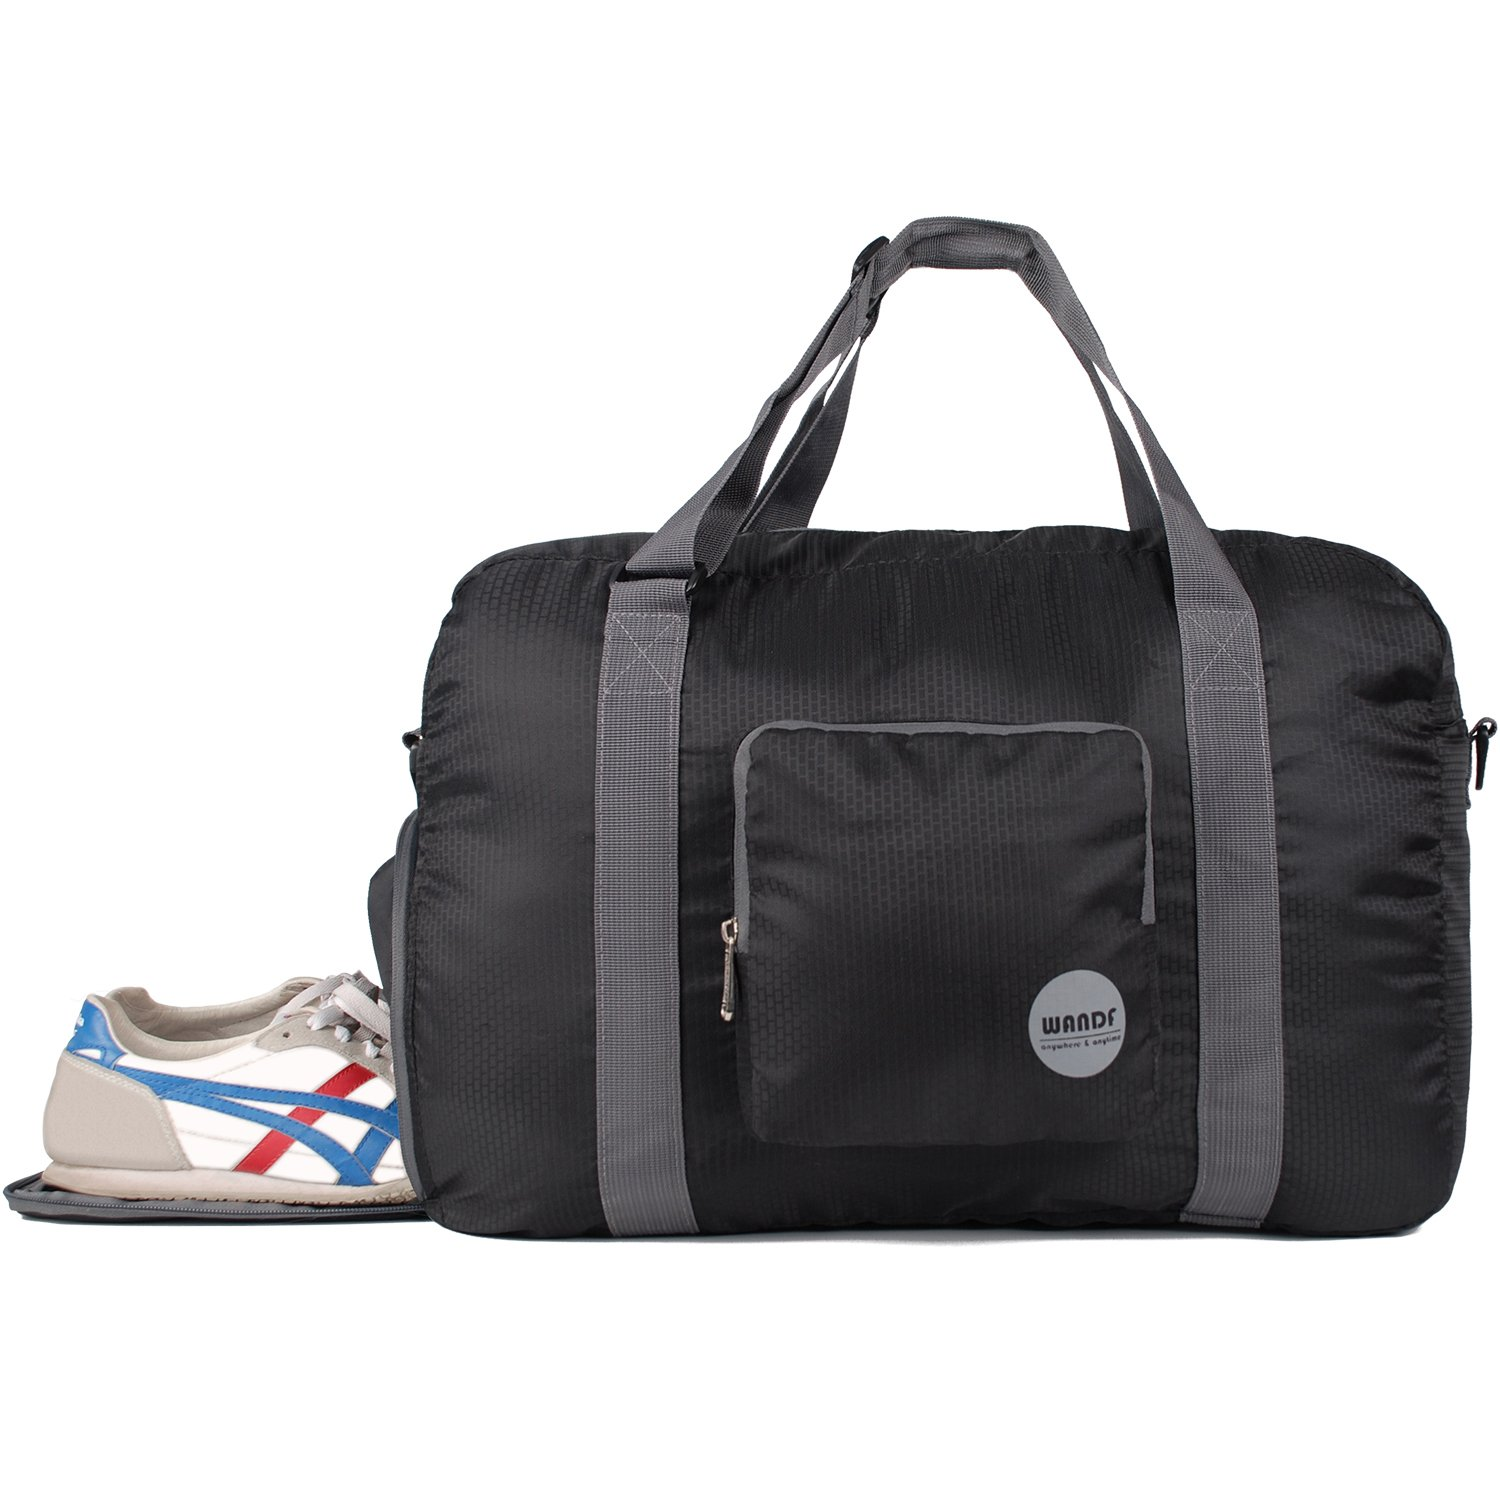 WANDF Foldable Duffle Bag with Shoe Compartment, for Luggage Sports Gym Water Resistant Nylon (Black)